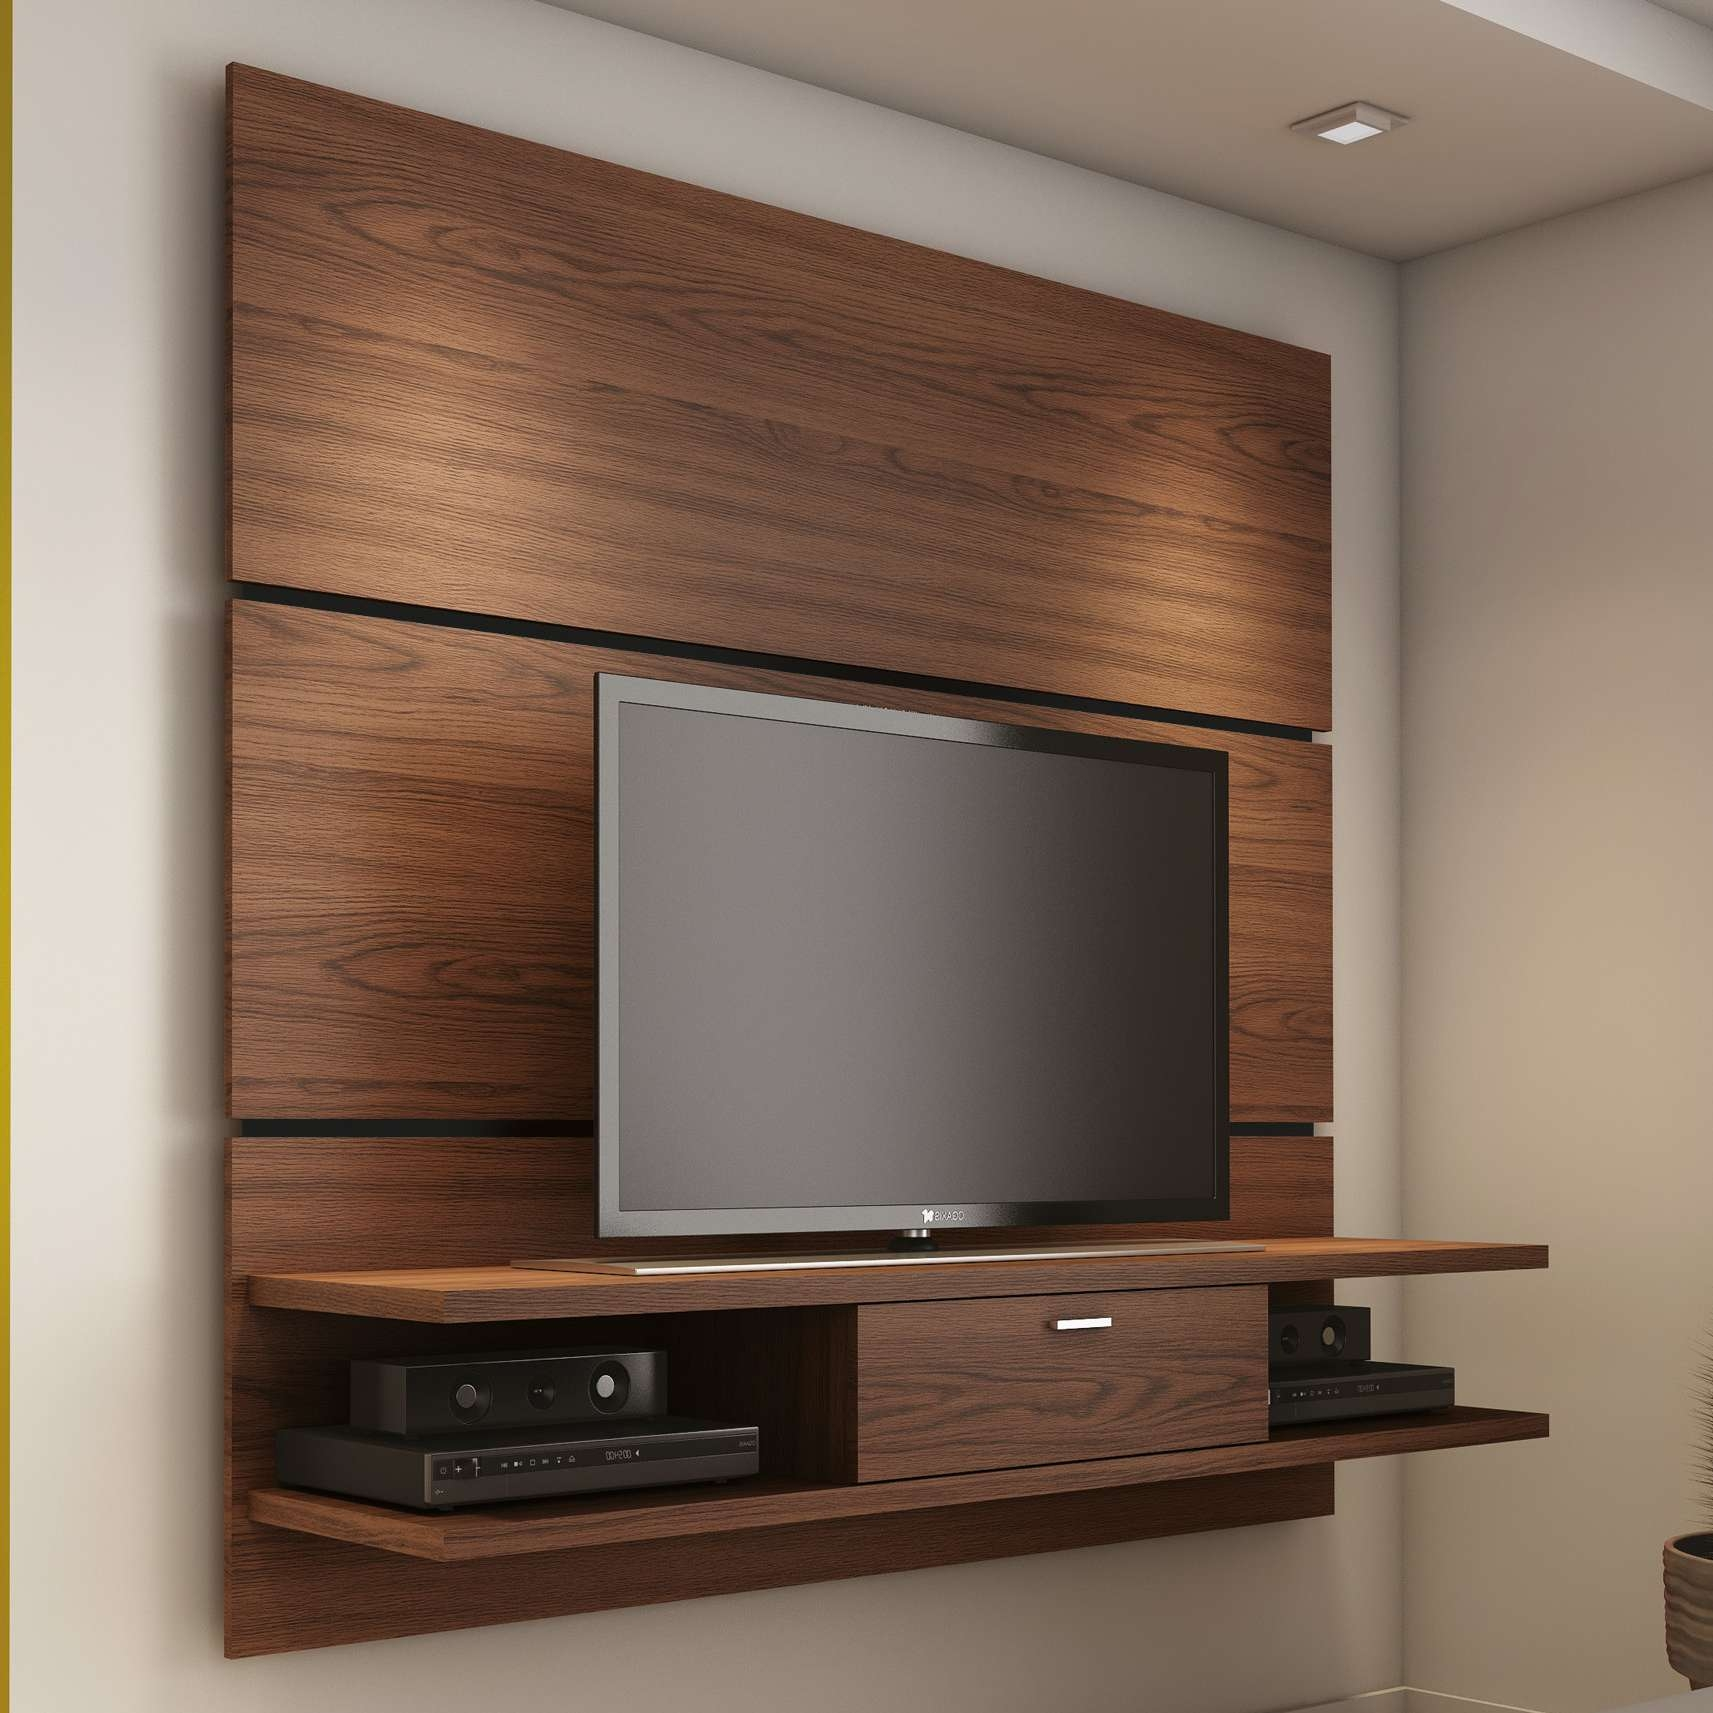 Tv Stand For 50 Inch Tv 65 Inch Tv Stand Black Tv Cabinet Unique Throughout Corner Tv Stands For 50 Inch Tv (View 20 of 20)